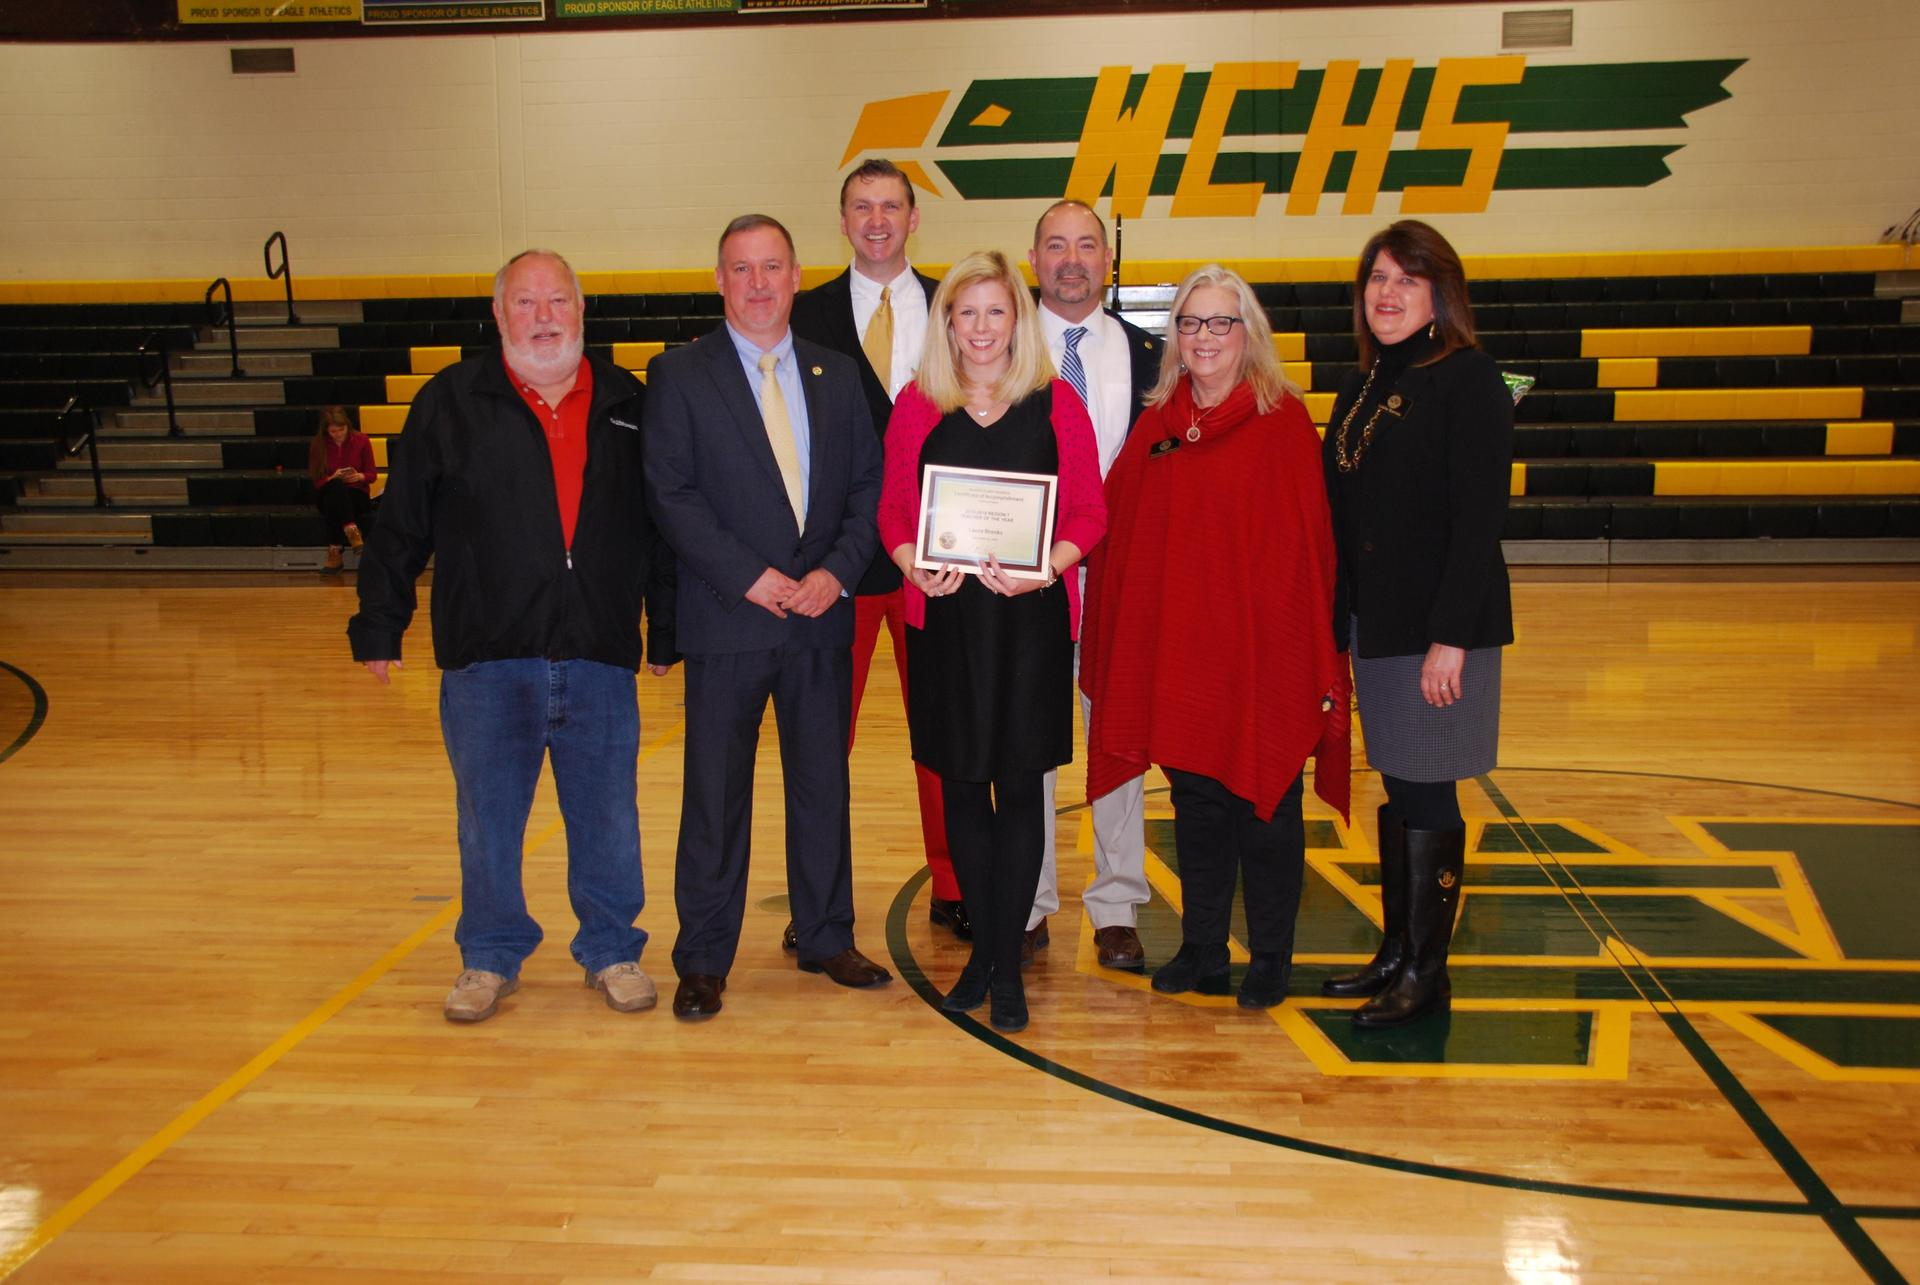 Northwest Regional Teacher of the Year, Laura Brooks, poses with Superintendent Mark Byrd, School Board Members, and the NC State Teacher of the Year